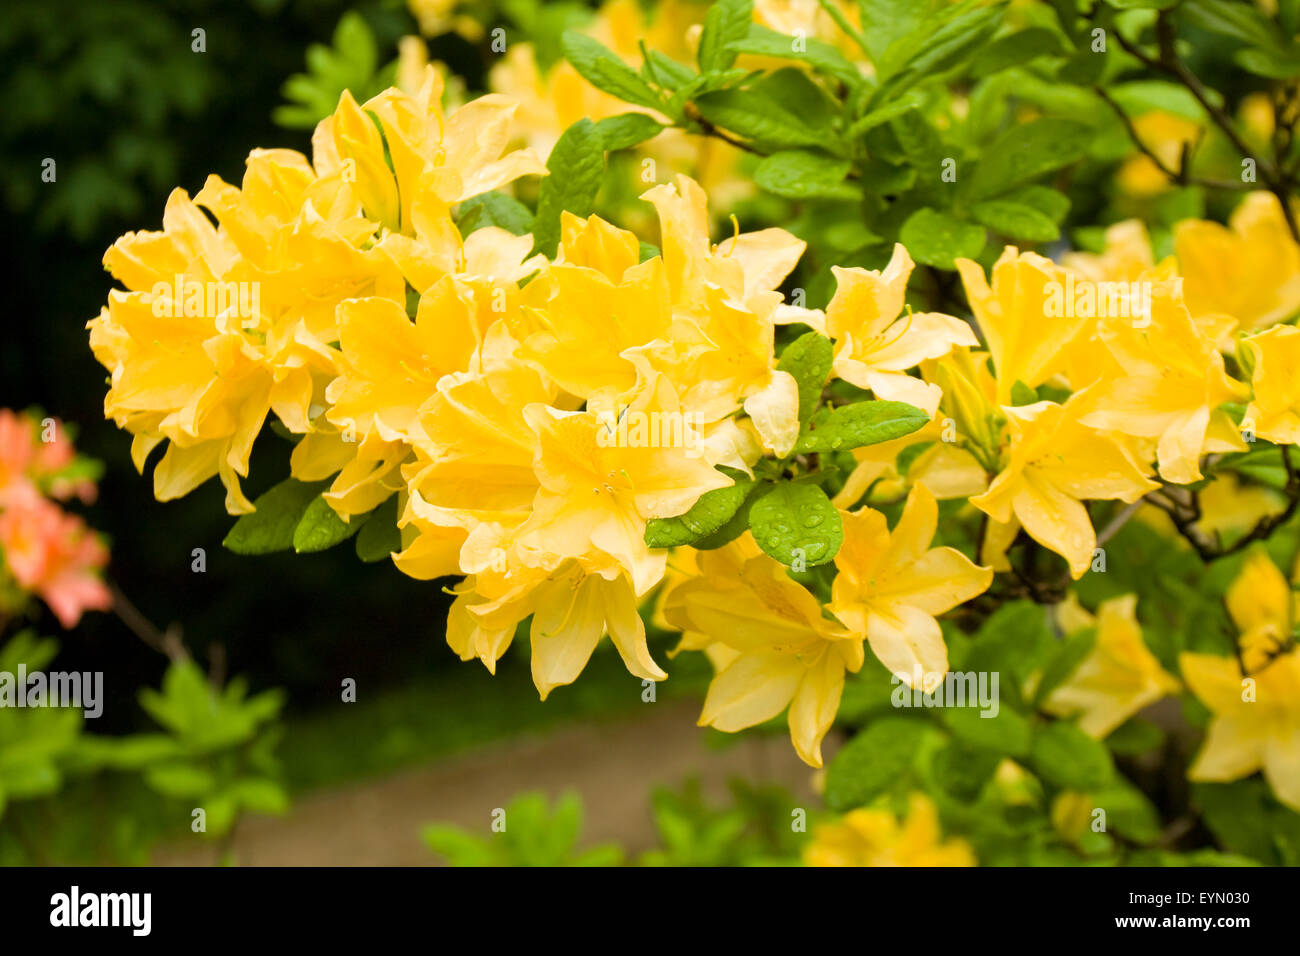 branch of tropical rhododendron plant with yellow flowers stock, Beautiful flower